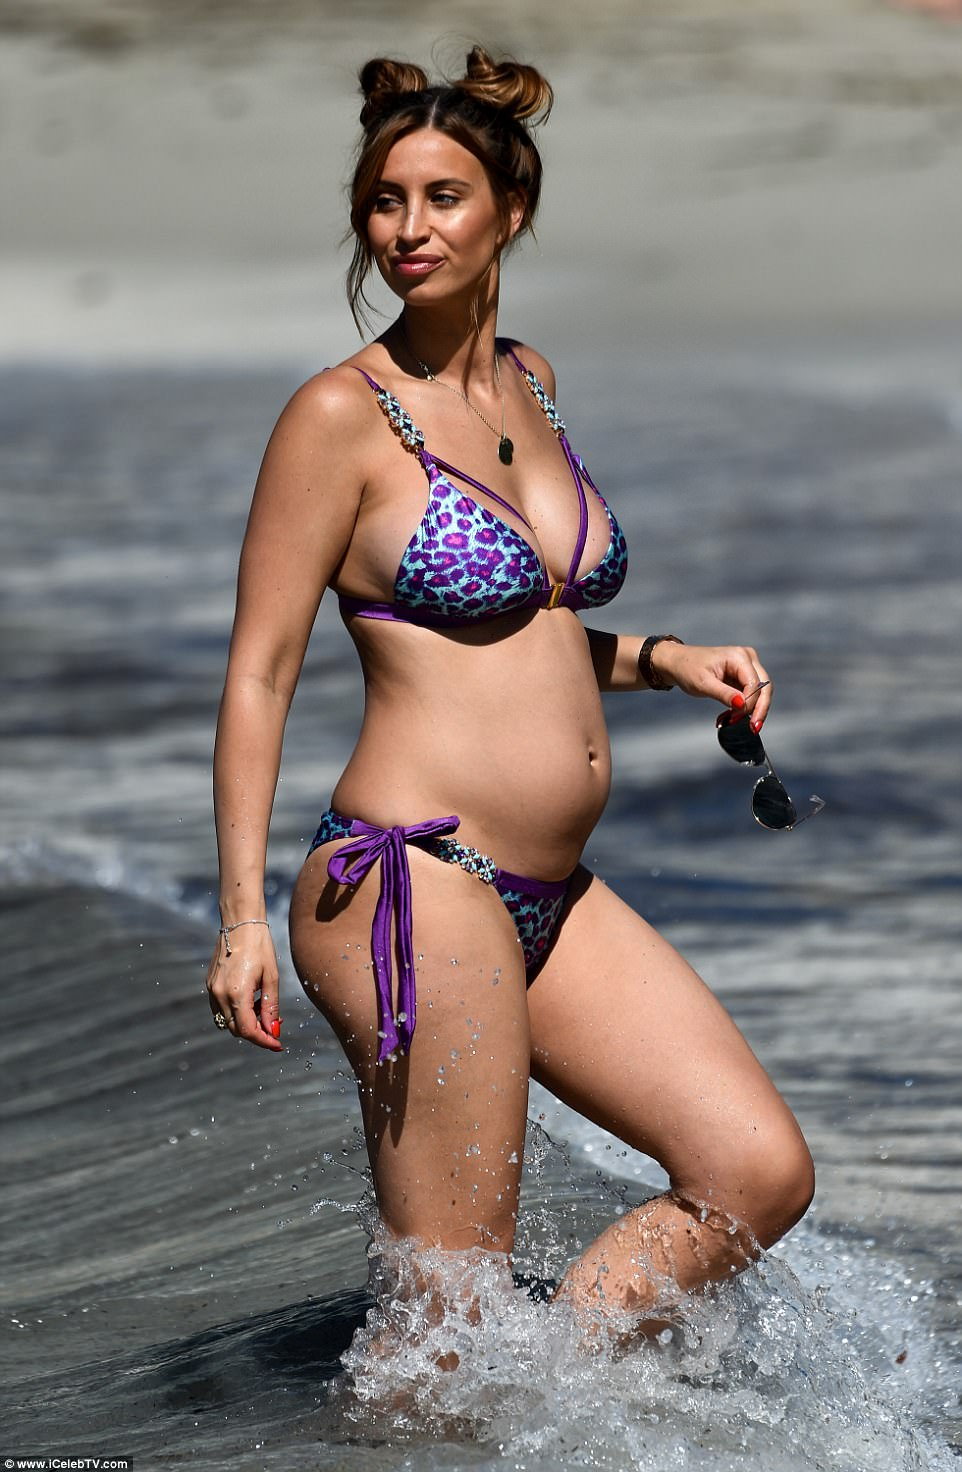 Beauty: Pregnant Ferne McCann, 26, looked sensational as she hit the beach in a skimpy leopard print bikini on her recent getaway to Mallorca